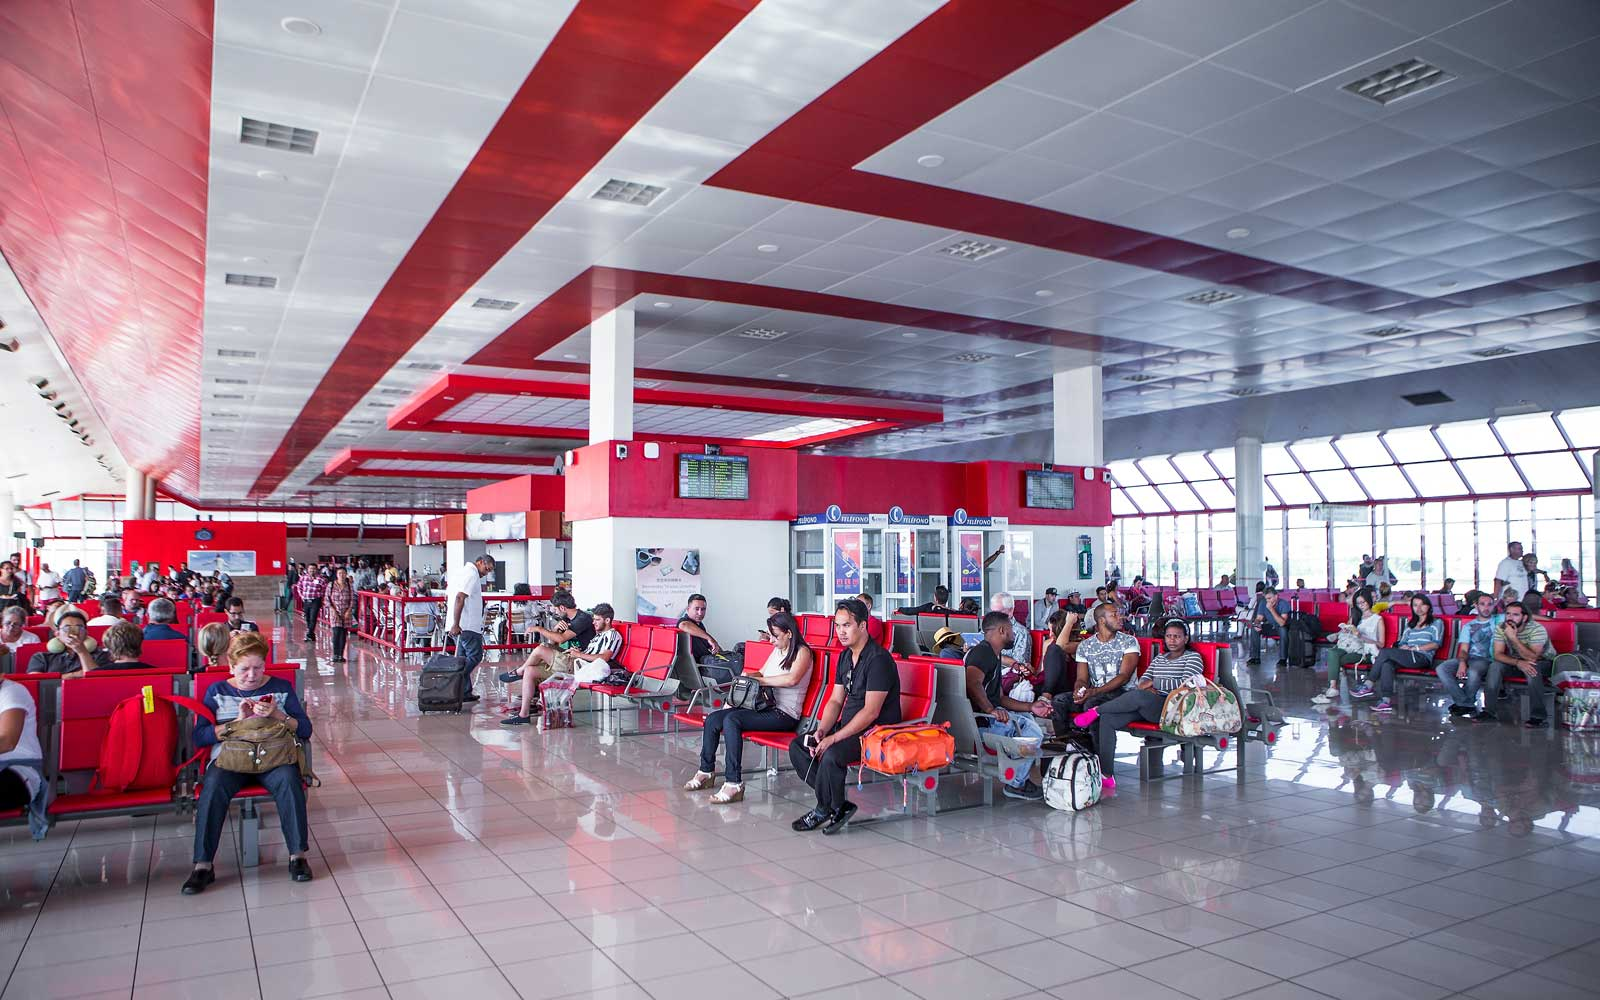 The Jose Marti International Airport in Havana, Cuba